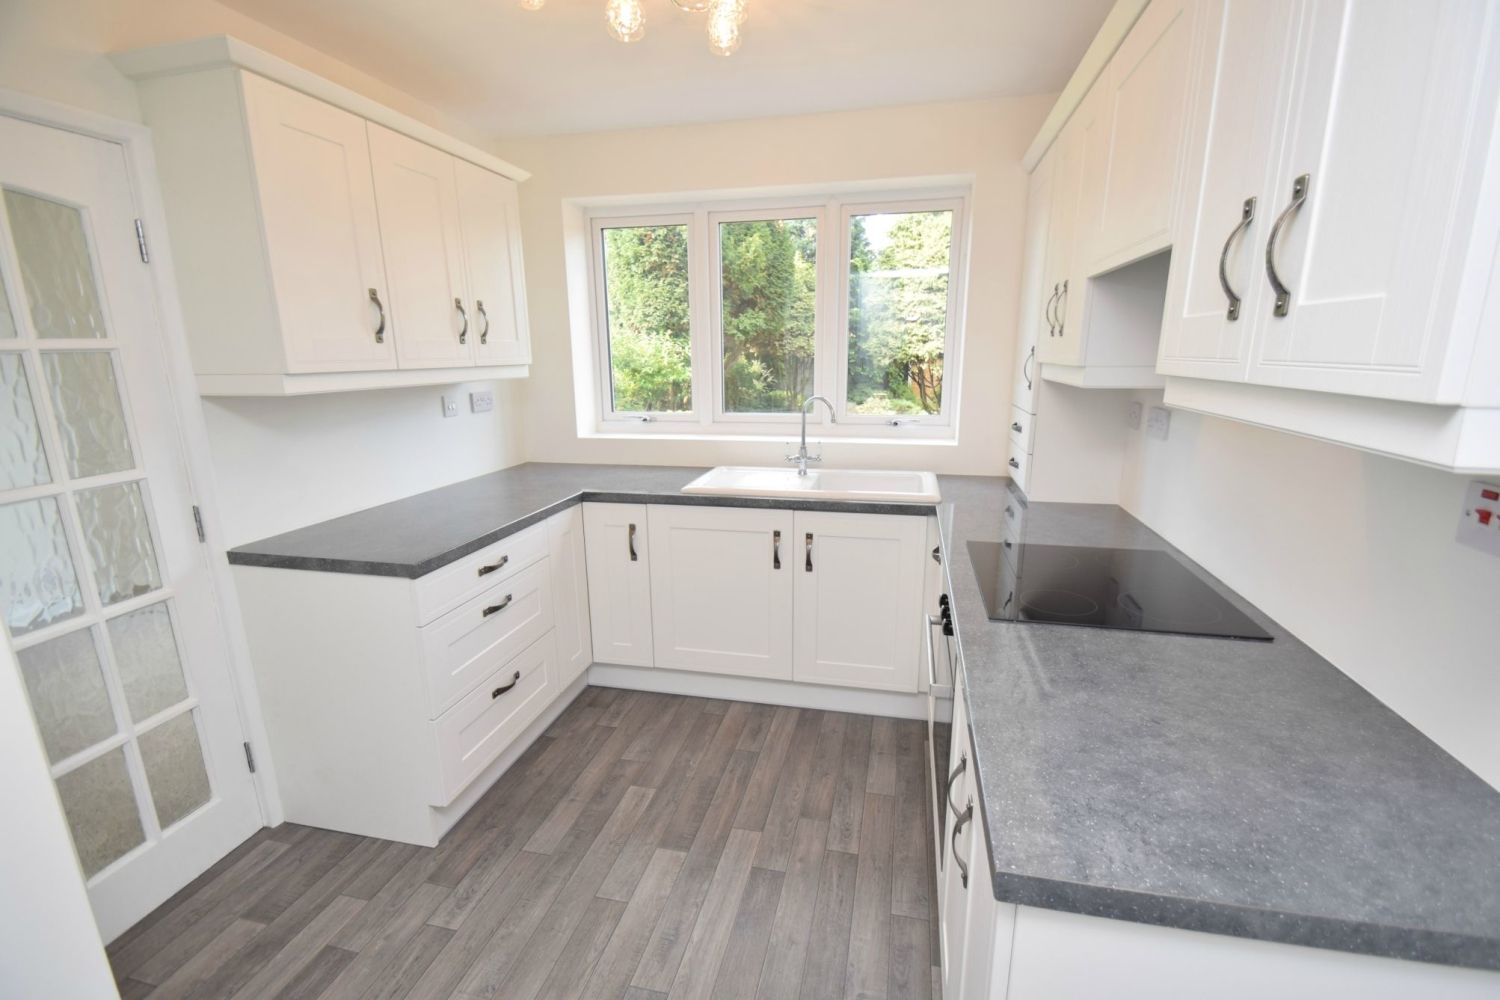 3 bed semi-detached for sale in Beachcroft Road, Wall Heath 5